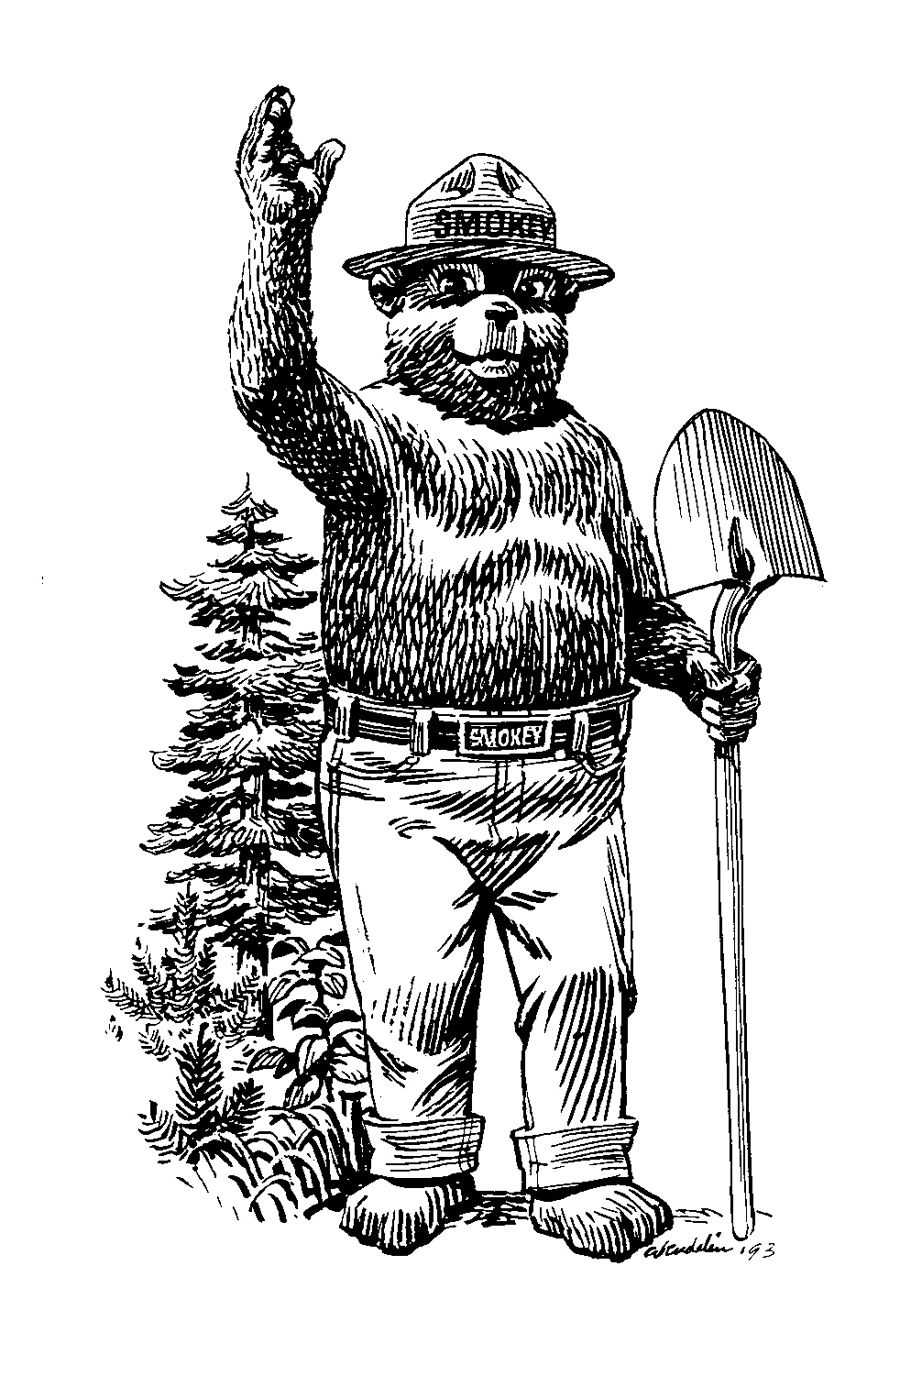 Smokey standing with shovel.jpg